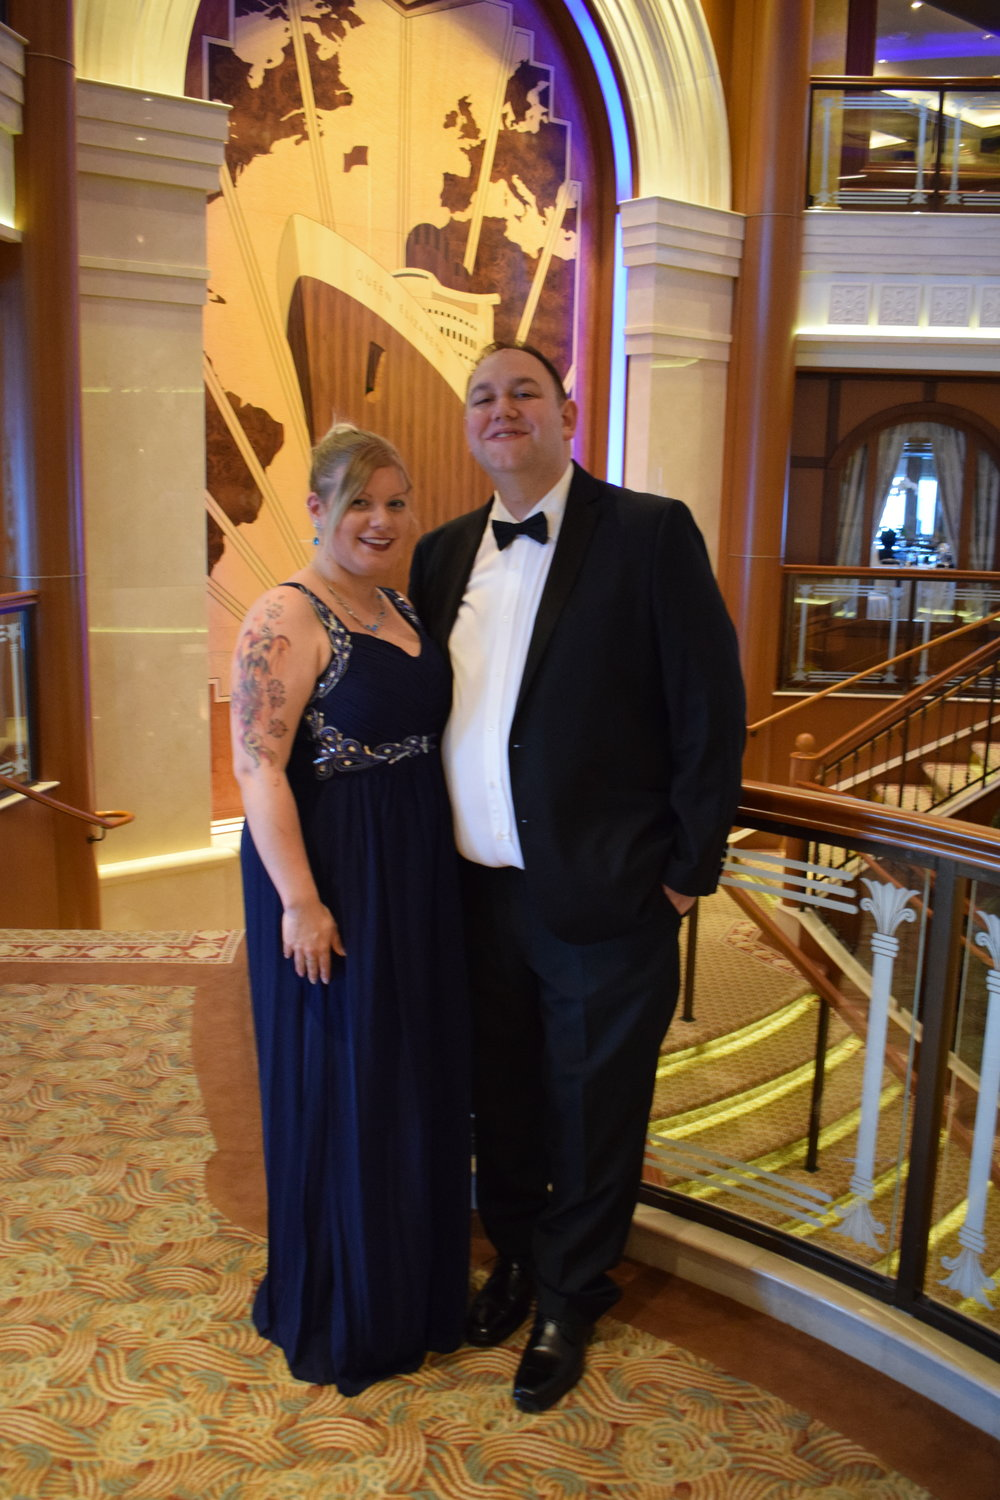 Me Becoming Mum's Cunard Experience / The Masquerade Ball